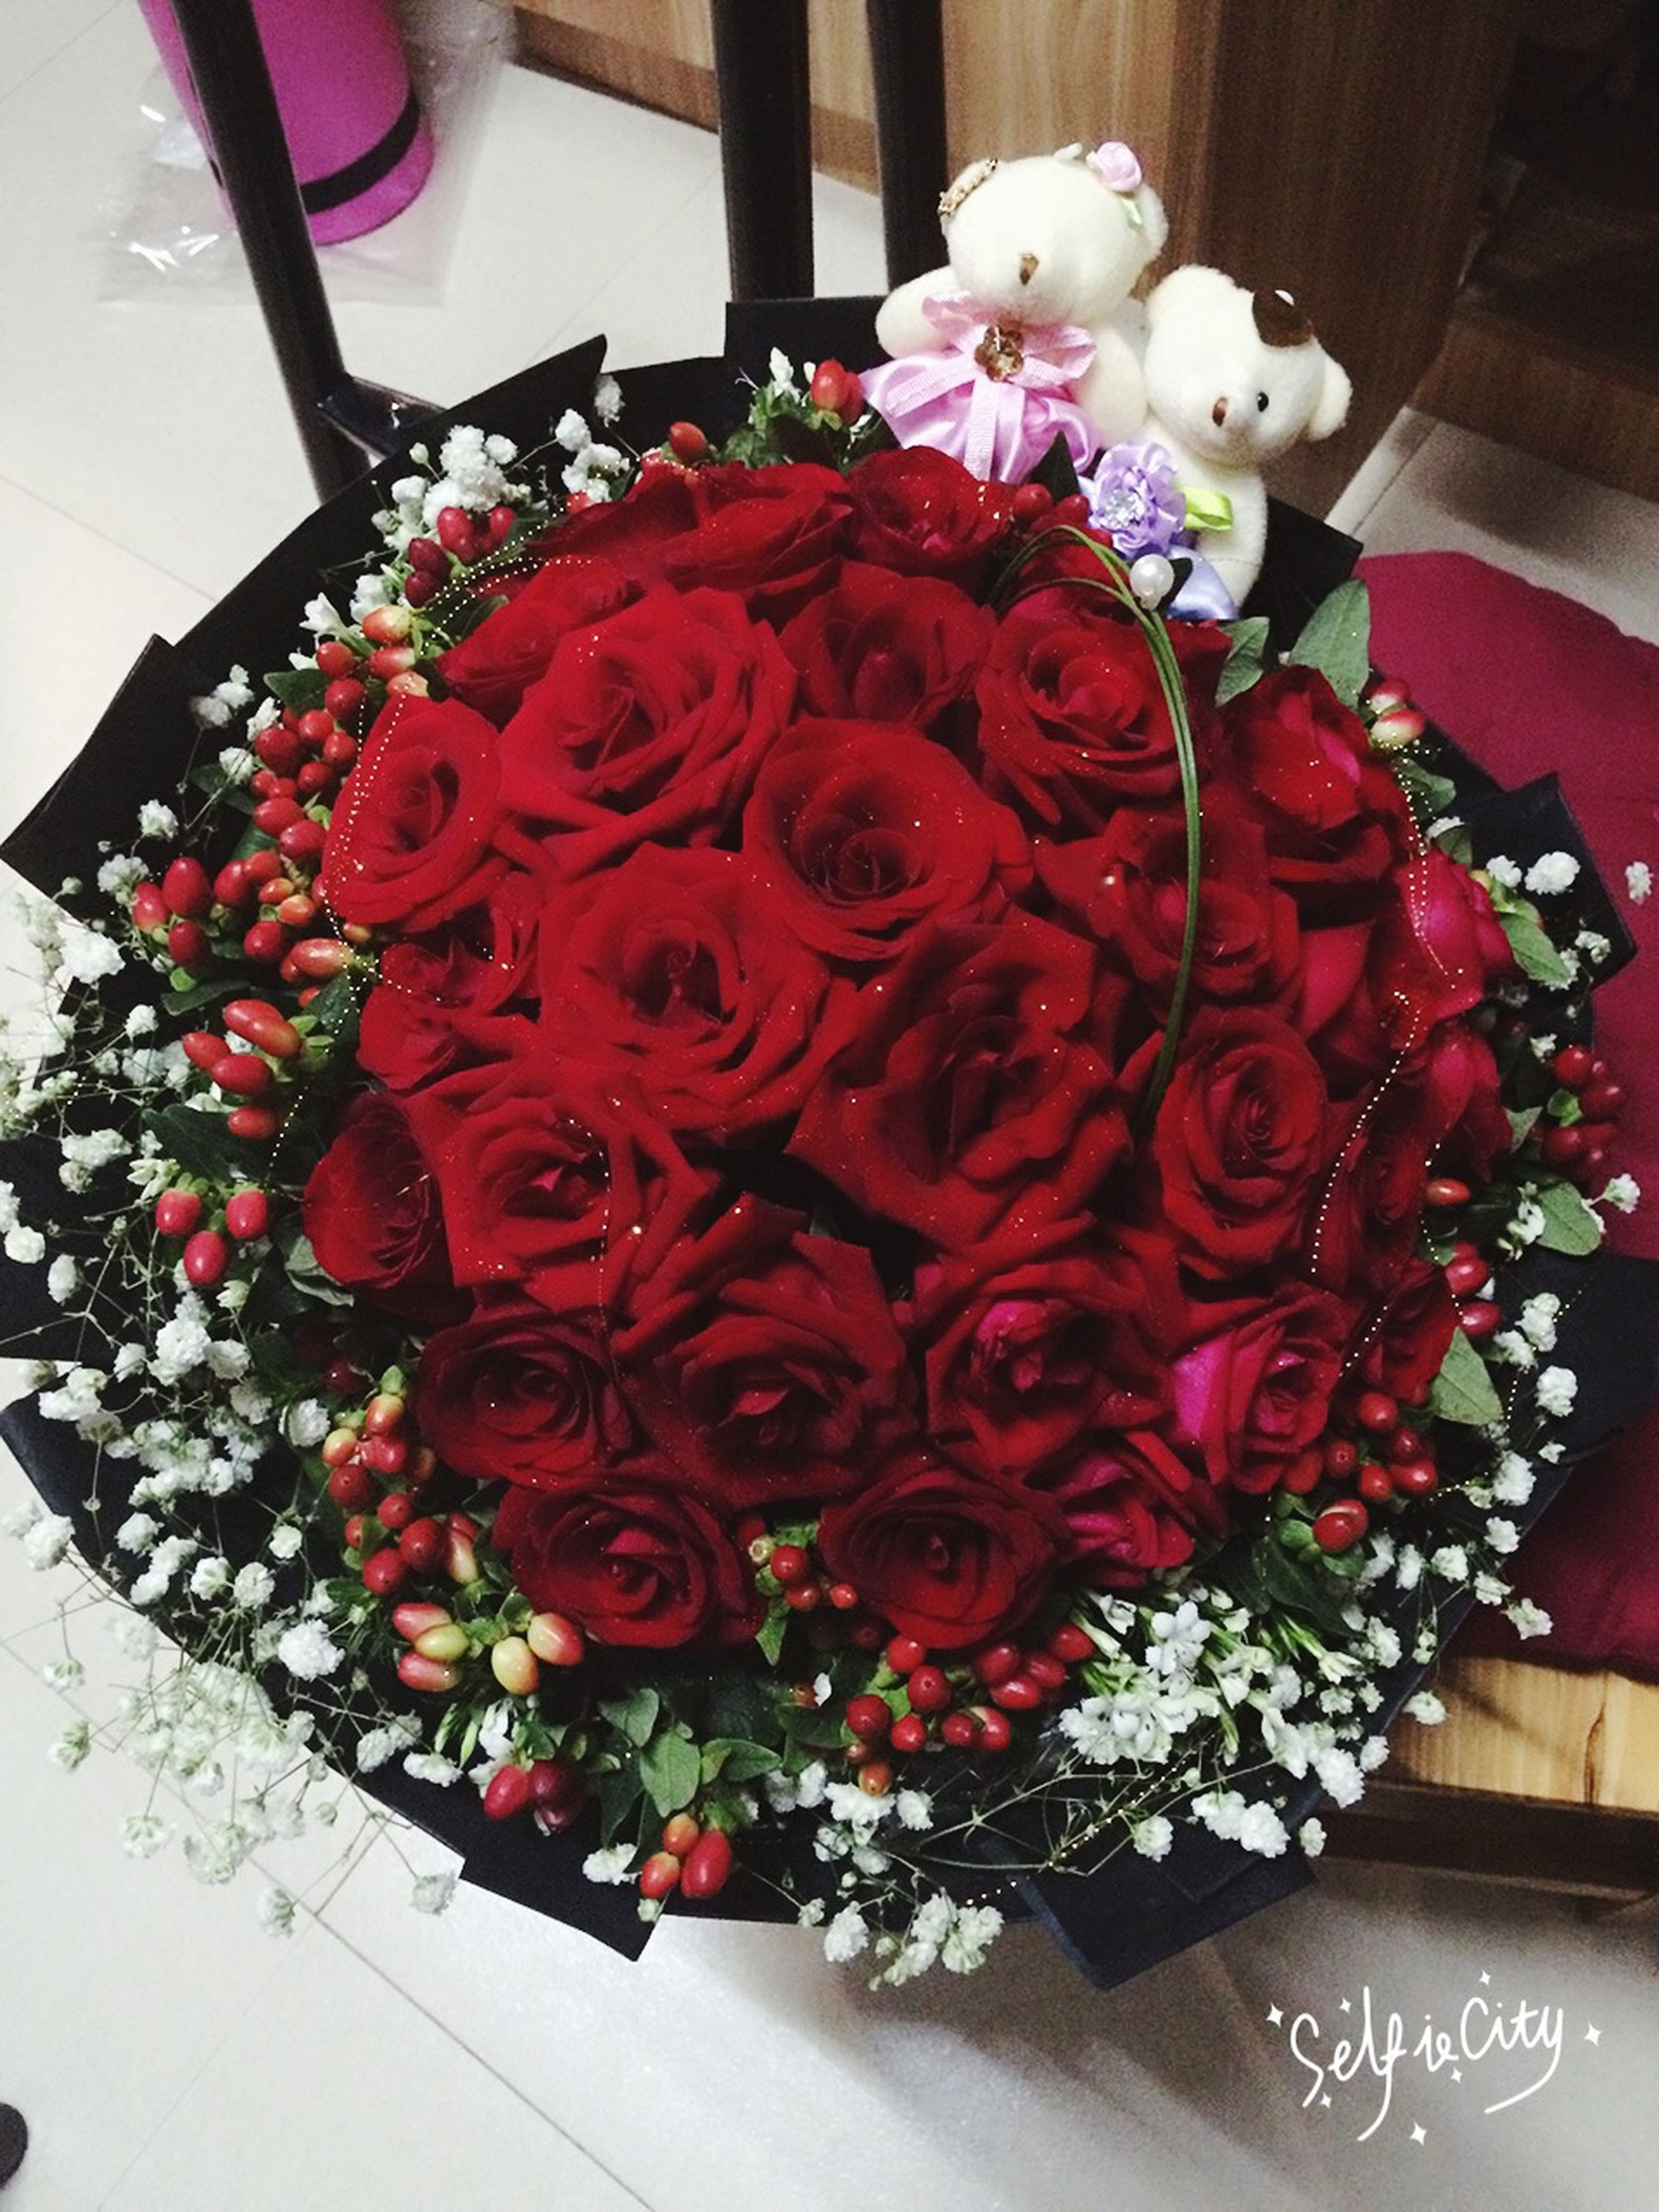 flower, indoors, decoration, freshness, fragility, petal, red, vase, bouquet, bunch of flowers, rose - flower, table, high angle view, home interior, flower head, flower arrangement, close-up, beauty in nature, pink color, no people